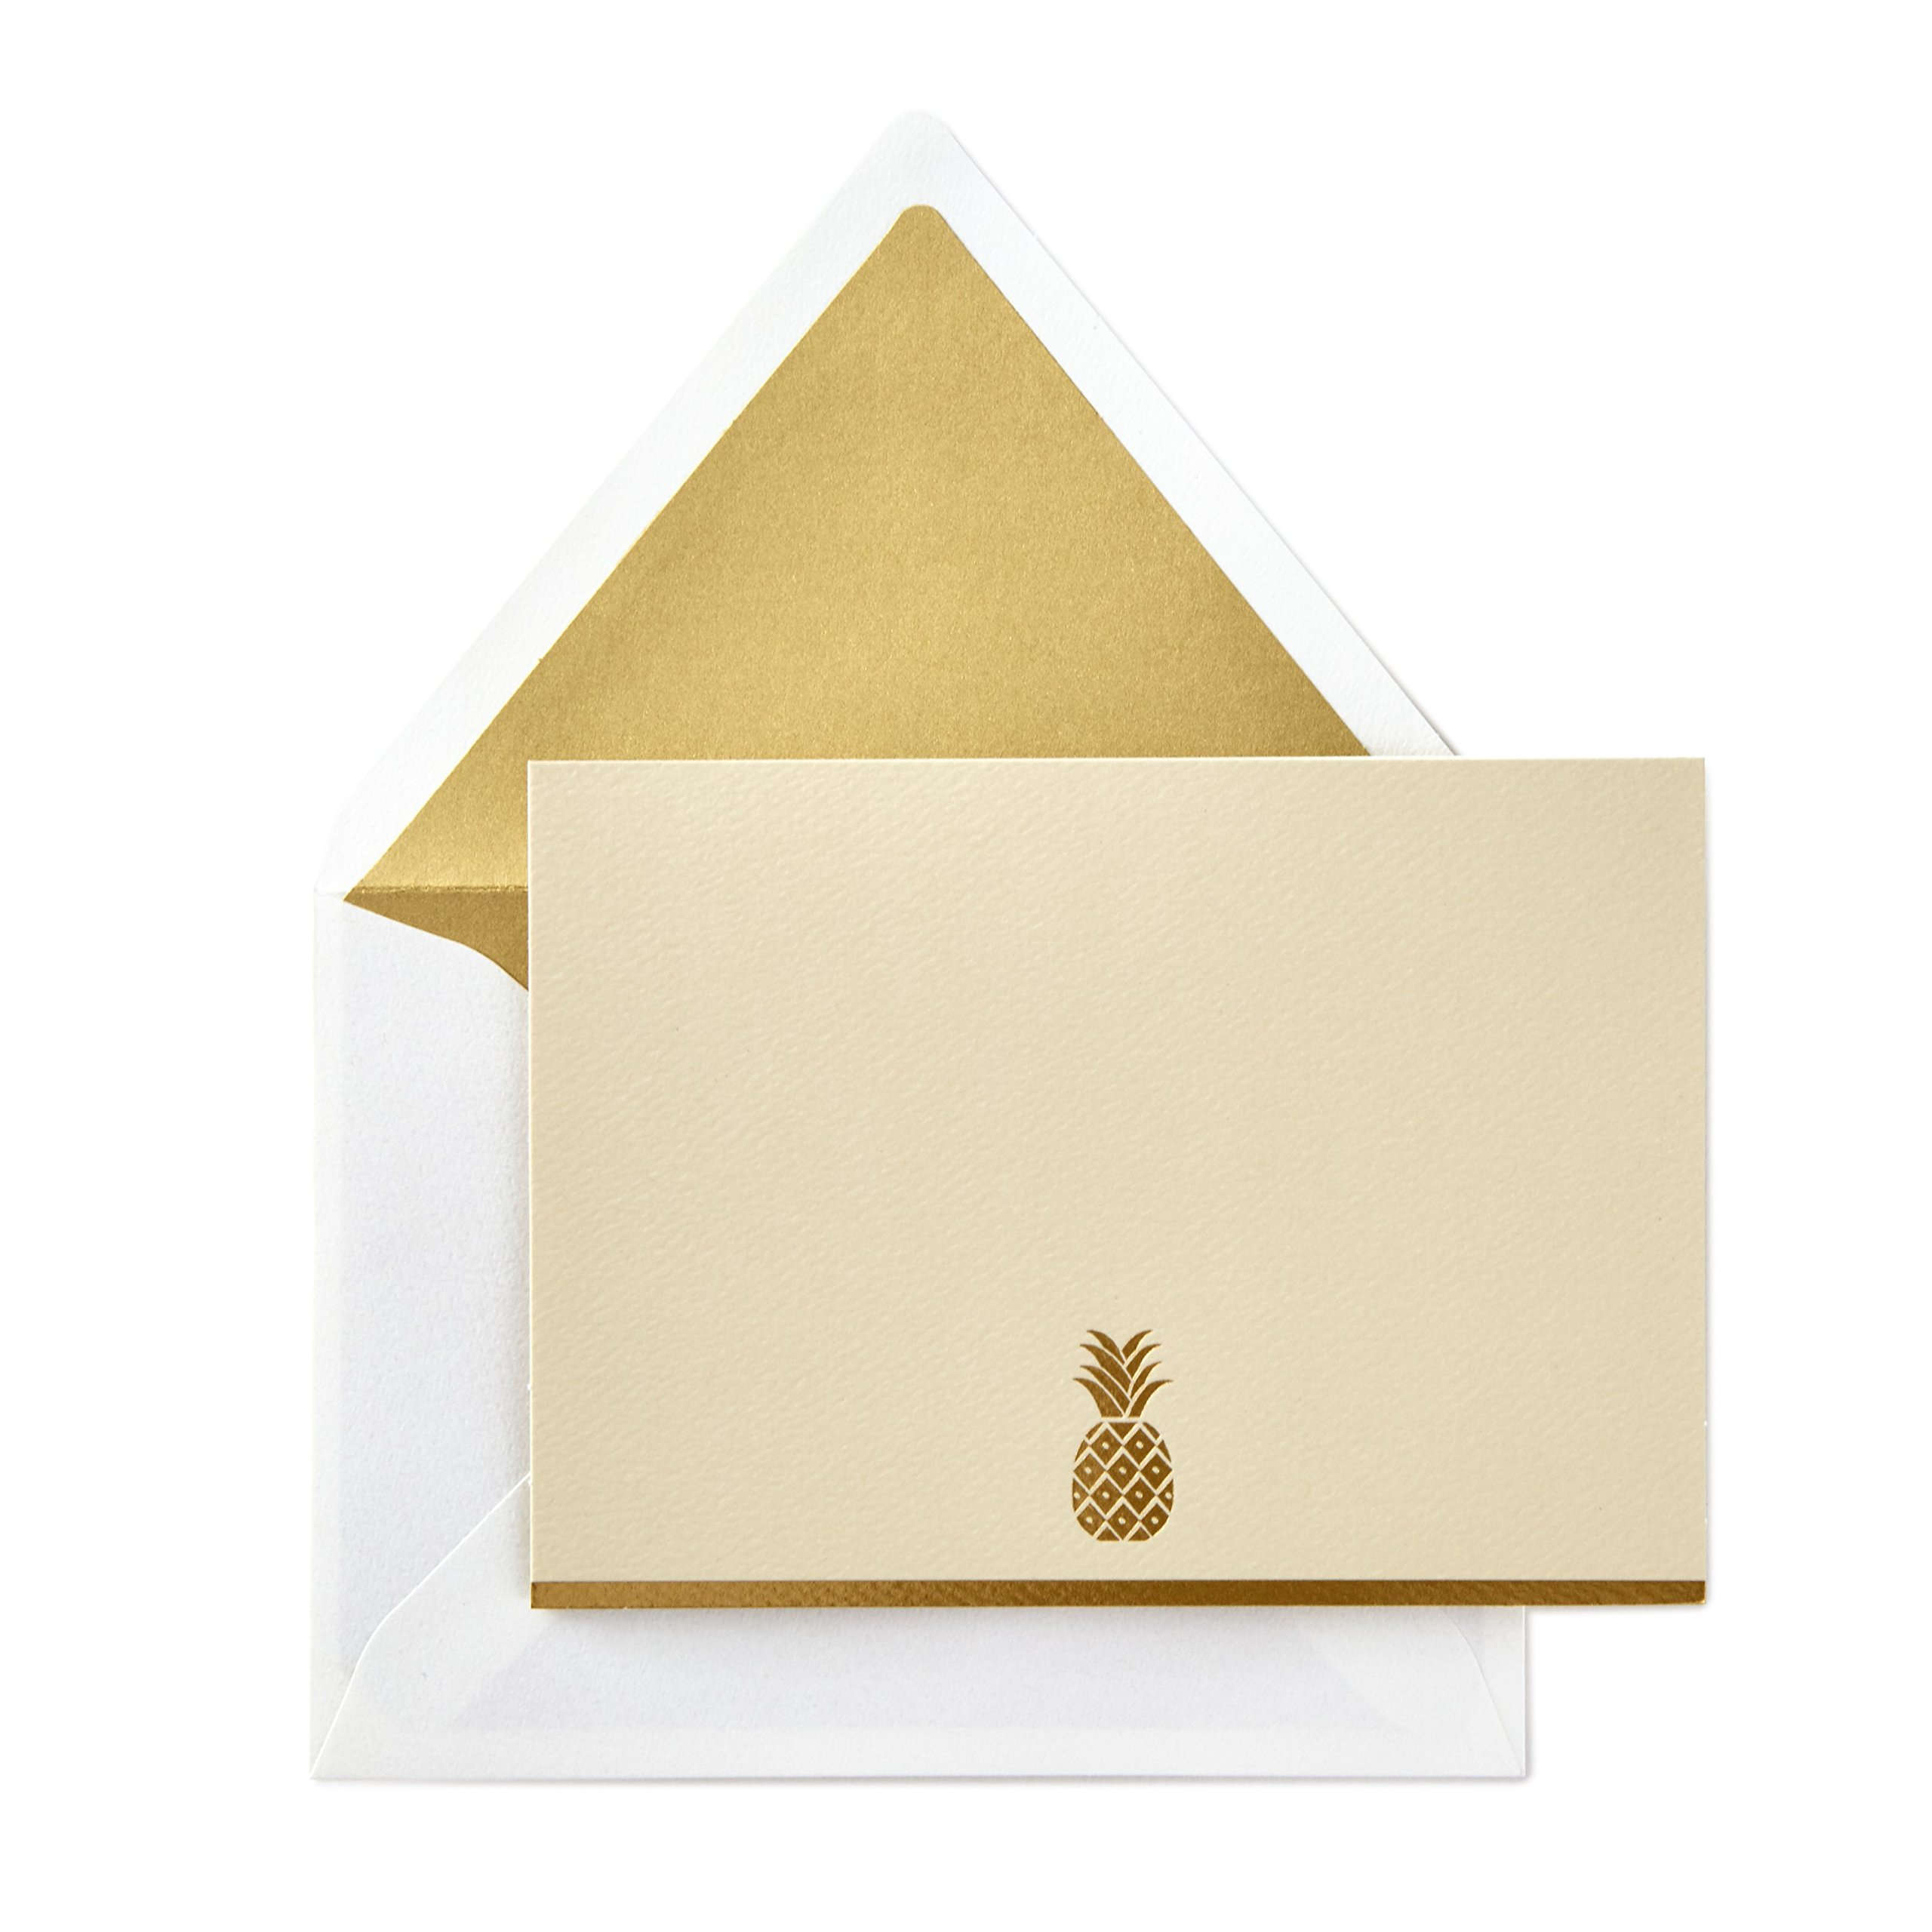 Hallmark Signature Gold Blank Cards, Pineapple (10 Cards with Envelopes)